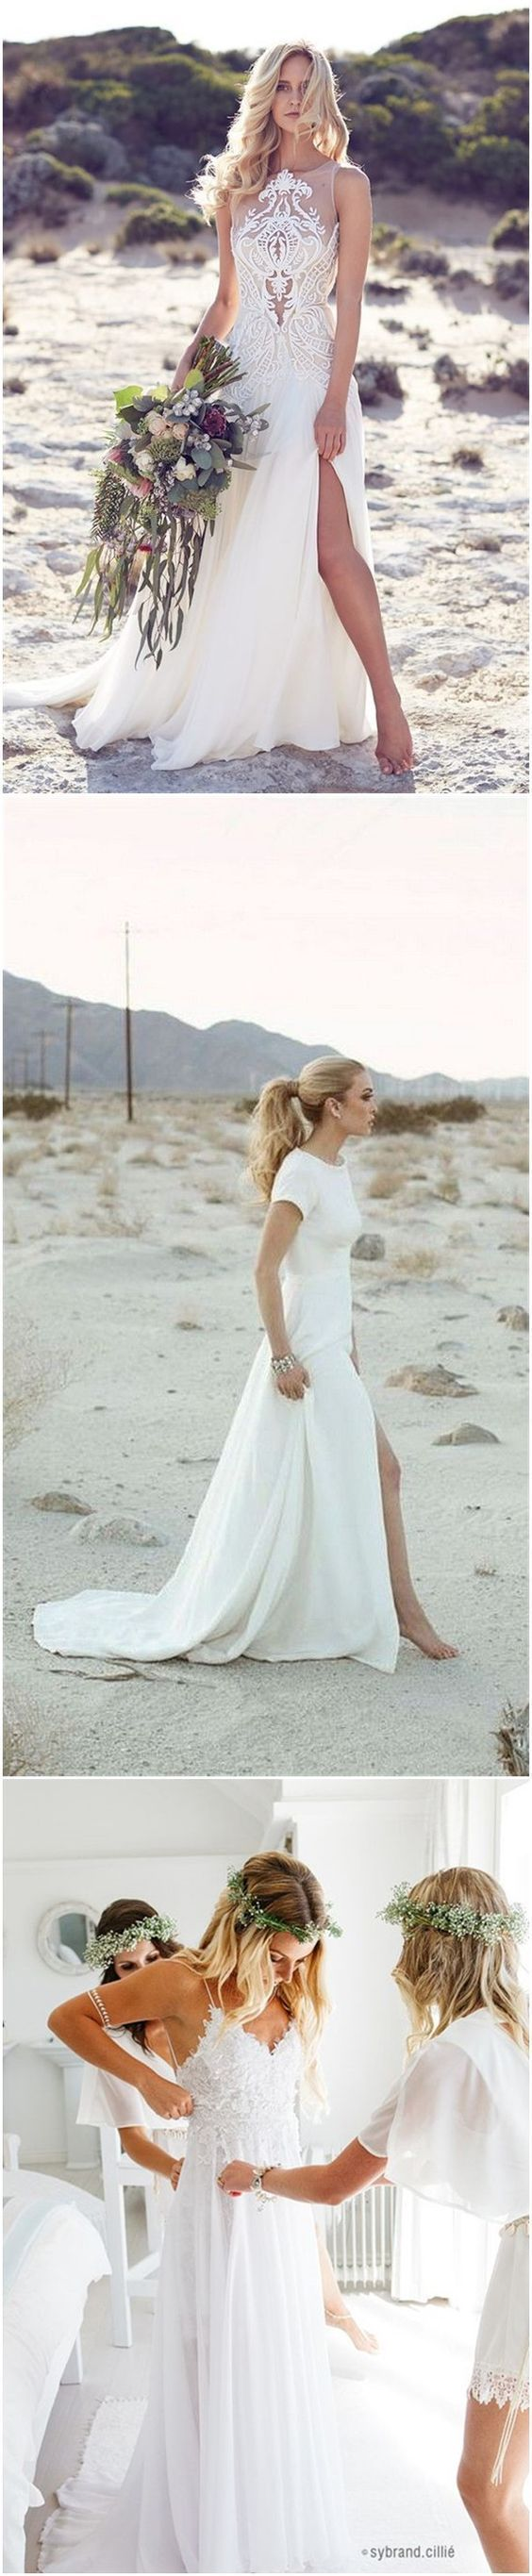 Beach wedding dresses top beach wedding dresses ideas to stand